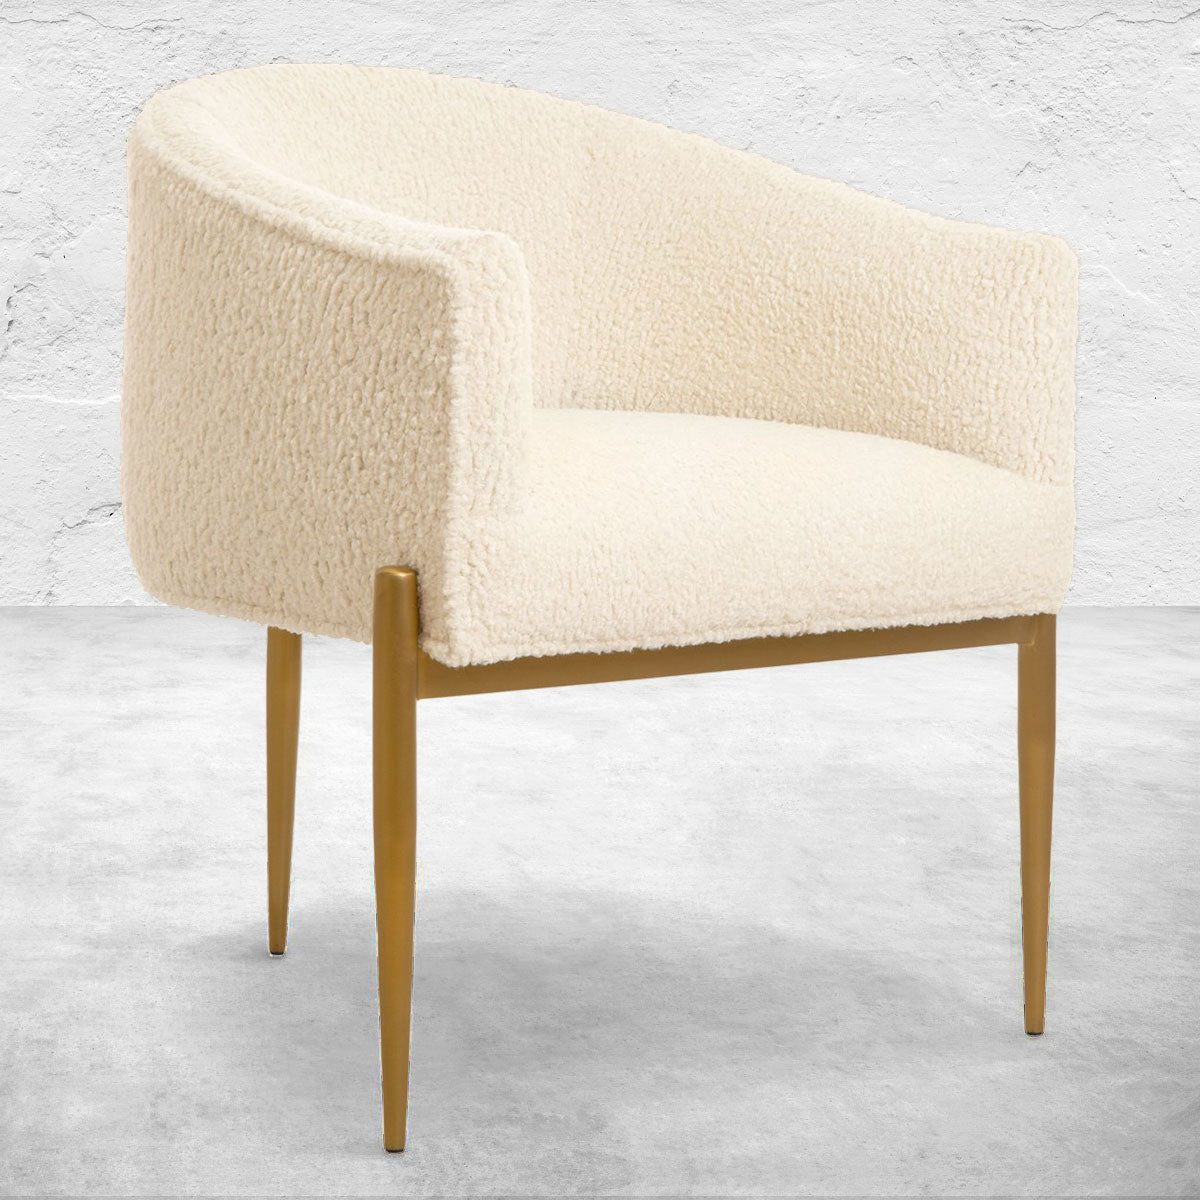 Art Deco Dining Chair in Faux Sheepskin